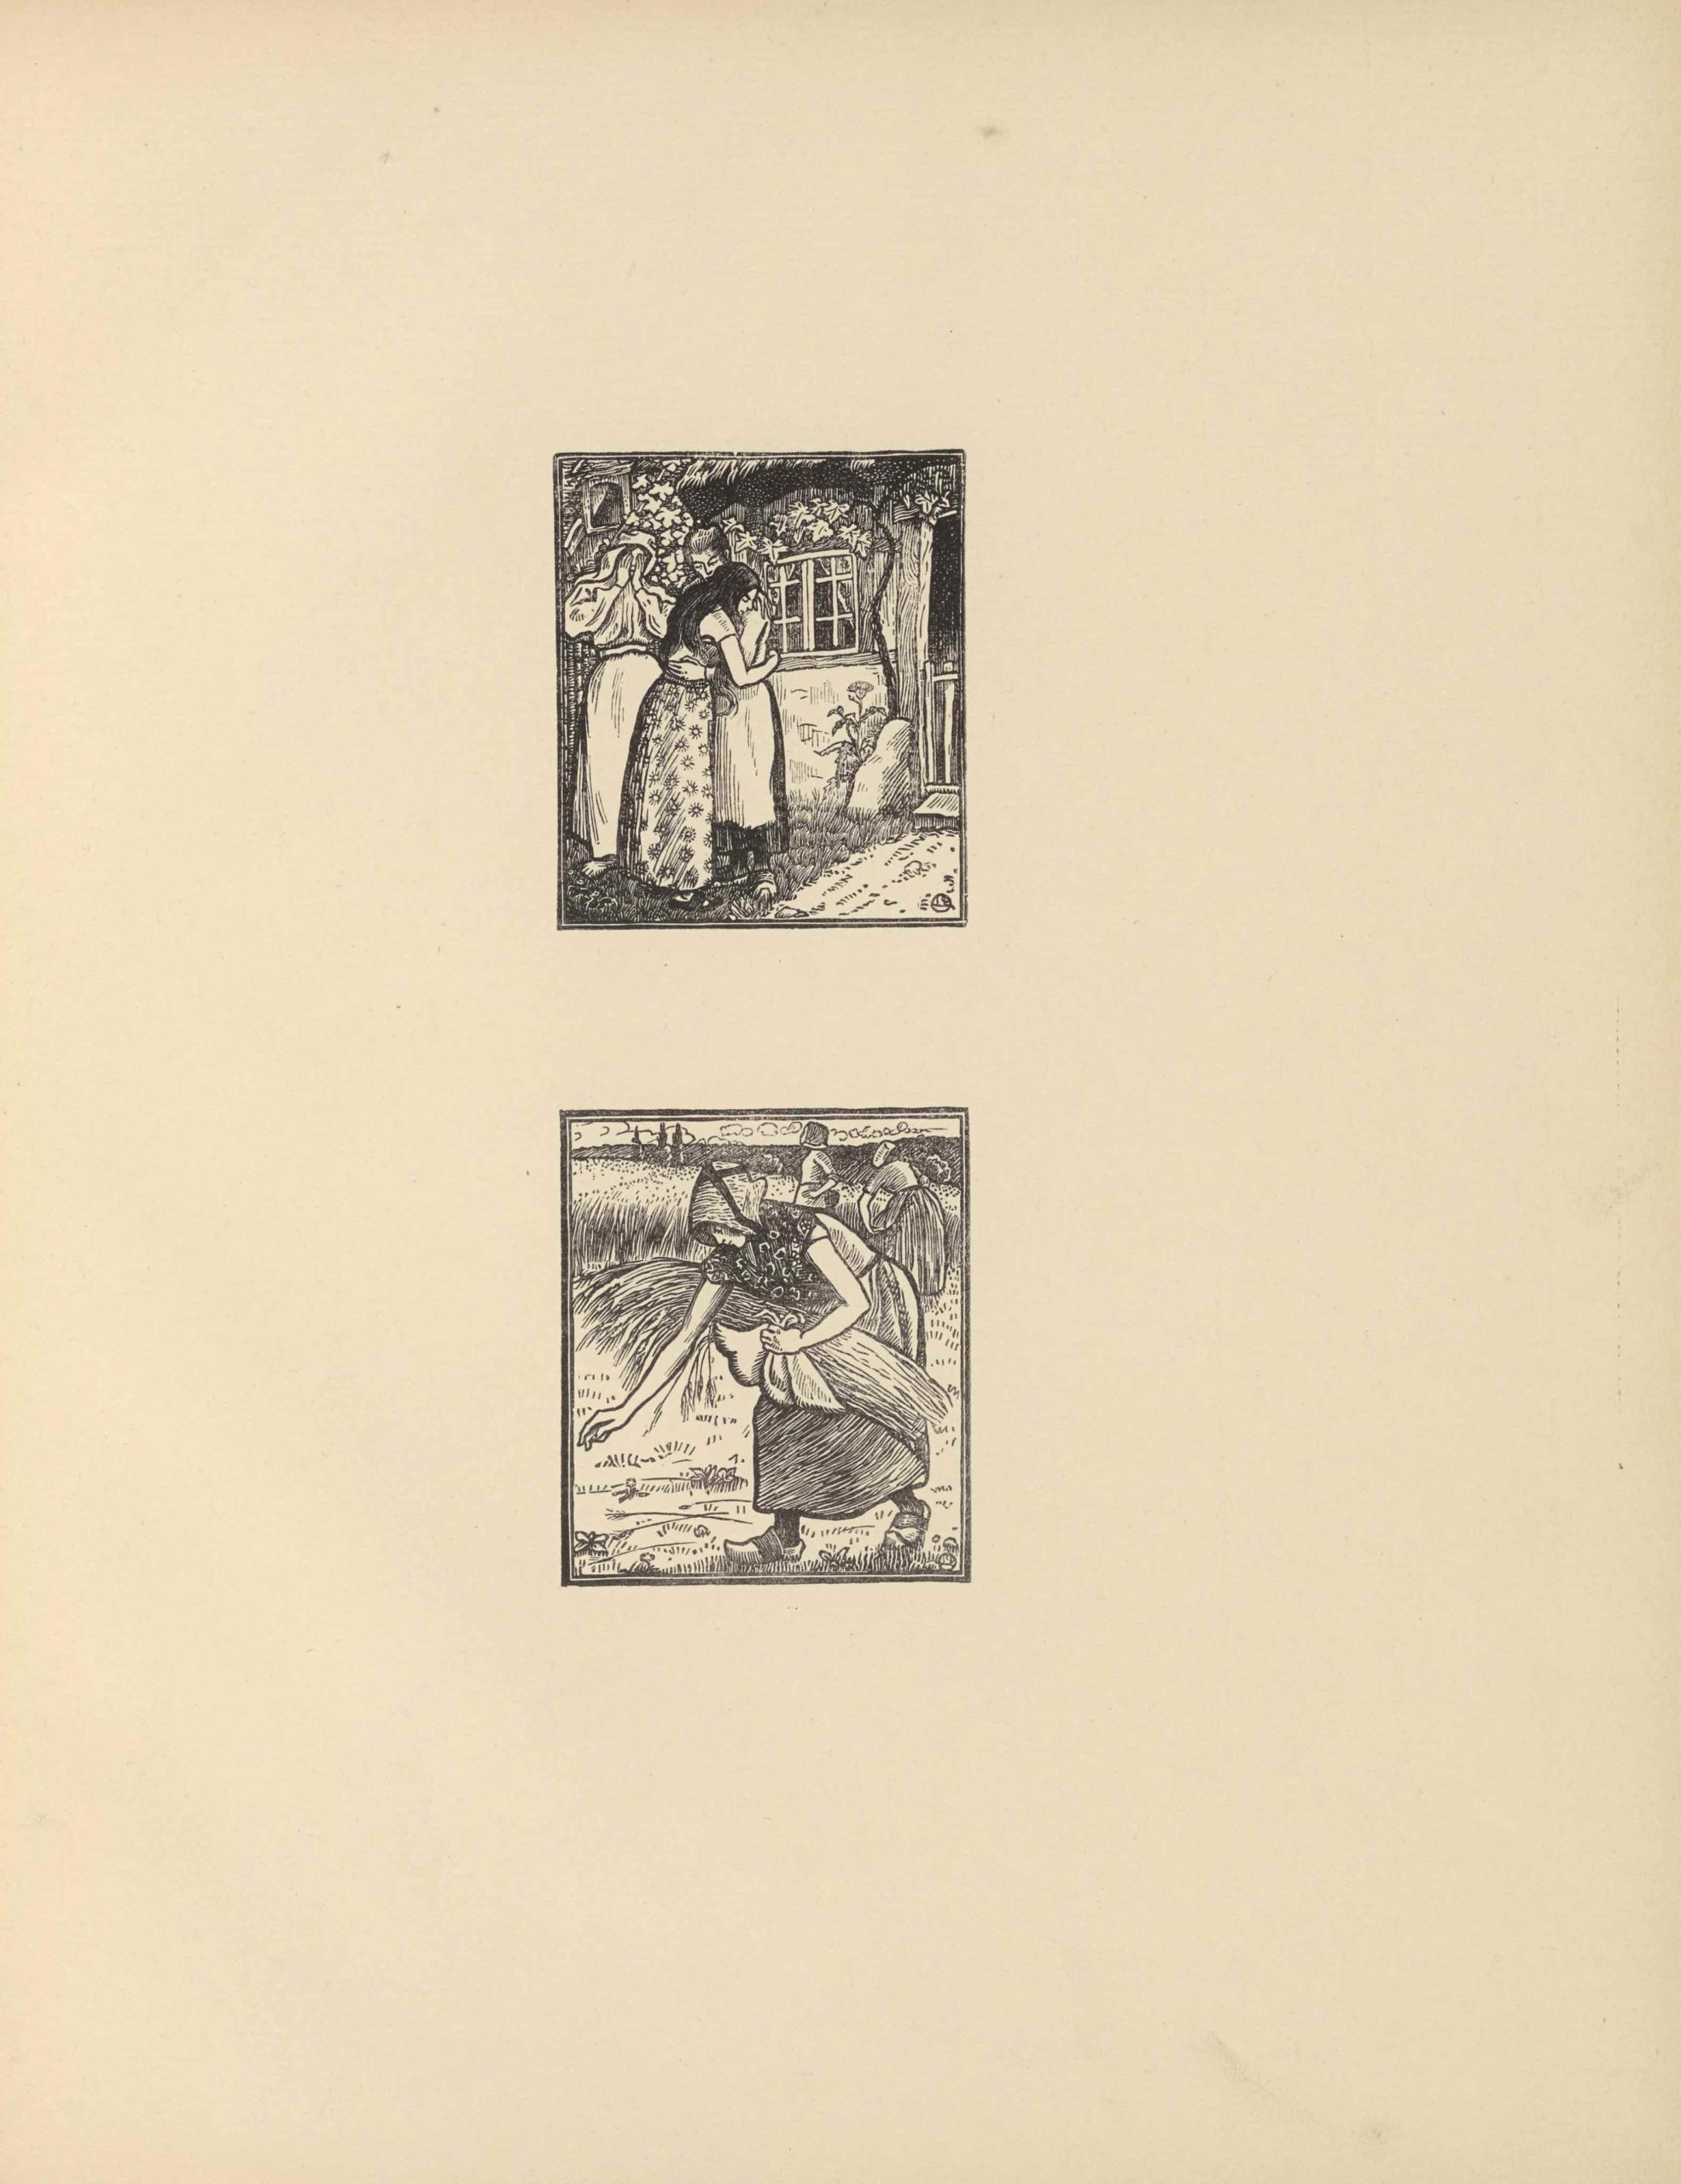 "The two small woodcuts appear in portrait orientation, centered vertically on the page, each within a double-lined border. The rectangular images, printed in black ink, depict scenes from the Biblical story of Ruth and Naomi. The top image shows three female figures, in Breton dress, standing in front of a building. In the centre foreground, dark-haired Ruth, wearing a floral dress, embraces the older-looking Naomi, who wears an apron and clogs. Just behind them, to their left, Orpah holds her hands to her face, appearing to weep. She too, wears clogs, as well as a scarf over her hair and shoulders. The house behind them has casement windows and a thatched roof. On the right, ivy and a flowering plant emerge out of a crack in the wall to cover the house. On the extreme right, an open doorway reveals the house's darkened interior. The second image is an extreme close-up of Ruth gleaning fallen wheat in a field. She bends forward, facing left, in the centre foreground. Her face, shadowed by a bonnet with dark ribbons crossed over the crown, is in profile. She wears clogs and a floral blouse as she bends, right arm outstretched, to pick up stray wheat strands. With her left hand, she holds a bundle of wheat in her apron. Behind her, in the middleground, two women in similar dress stand in the field. More fields stretch into the distance, punctuated by three trees on the left. In the distance, clouds roll in from the left. Both images have a stylized monogram of the artist's initials in the bottom right corner; a capital ""L"" and capital ""P,"" rotated 90 degrees to the left, are surrounded by a circle."